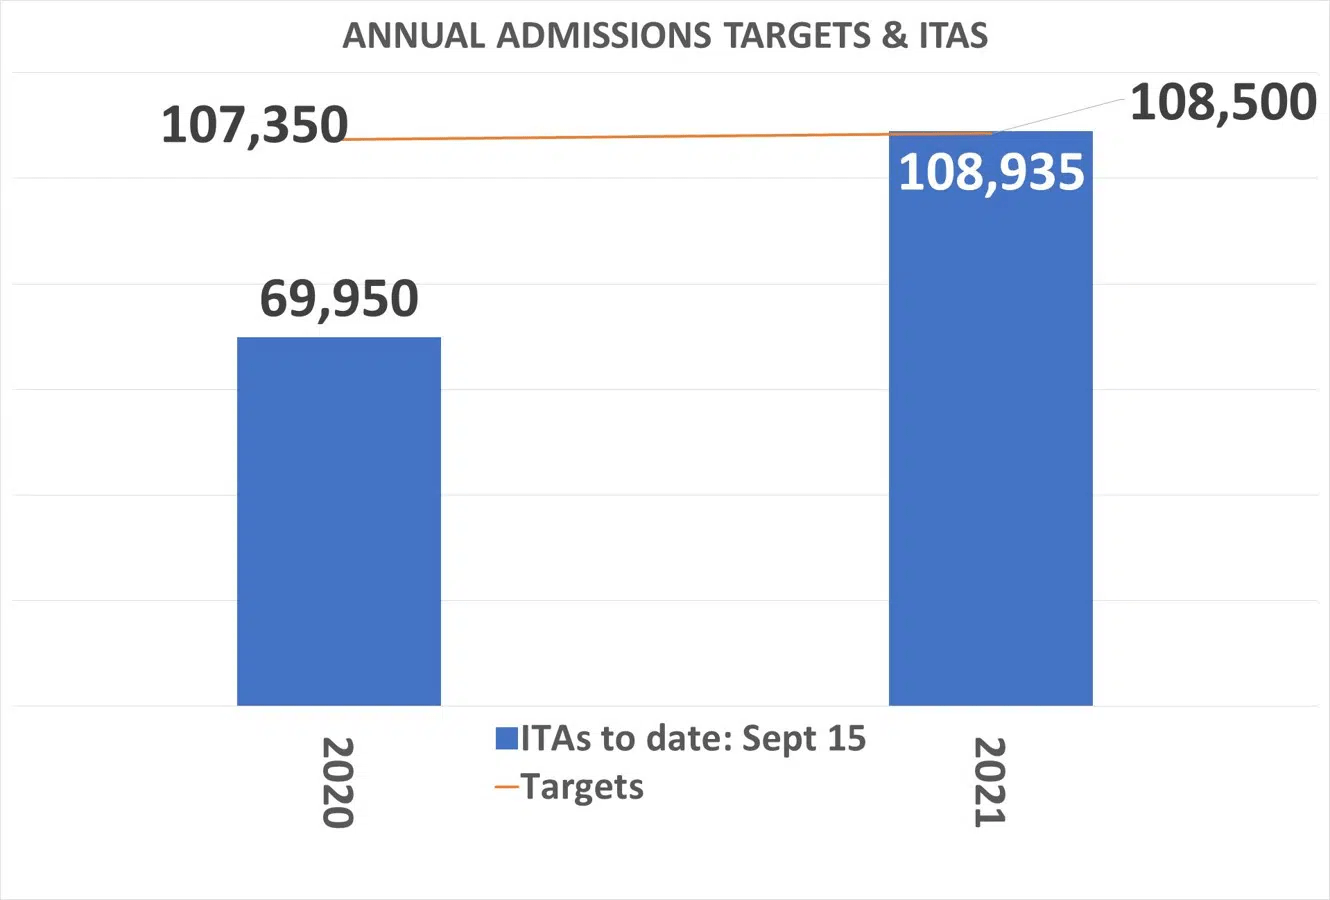 Annual-Admission-Targets-and-ITAS-till-sept-15-2021